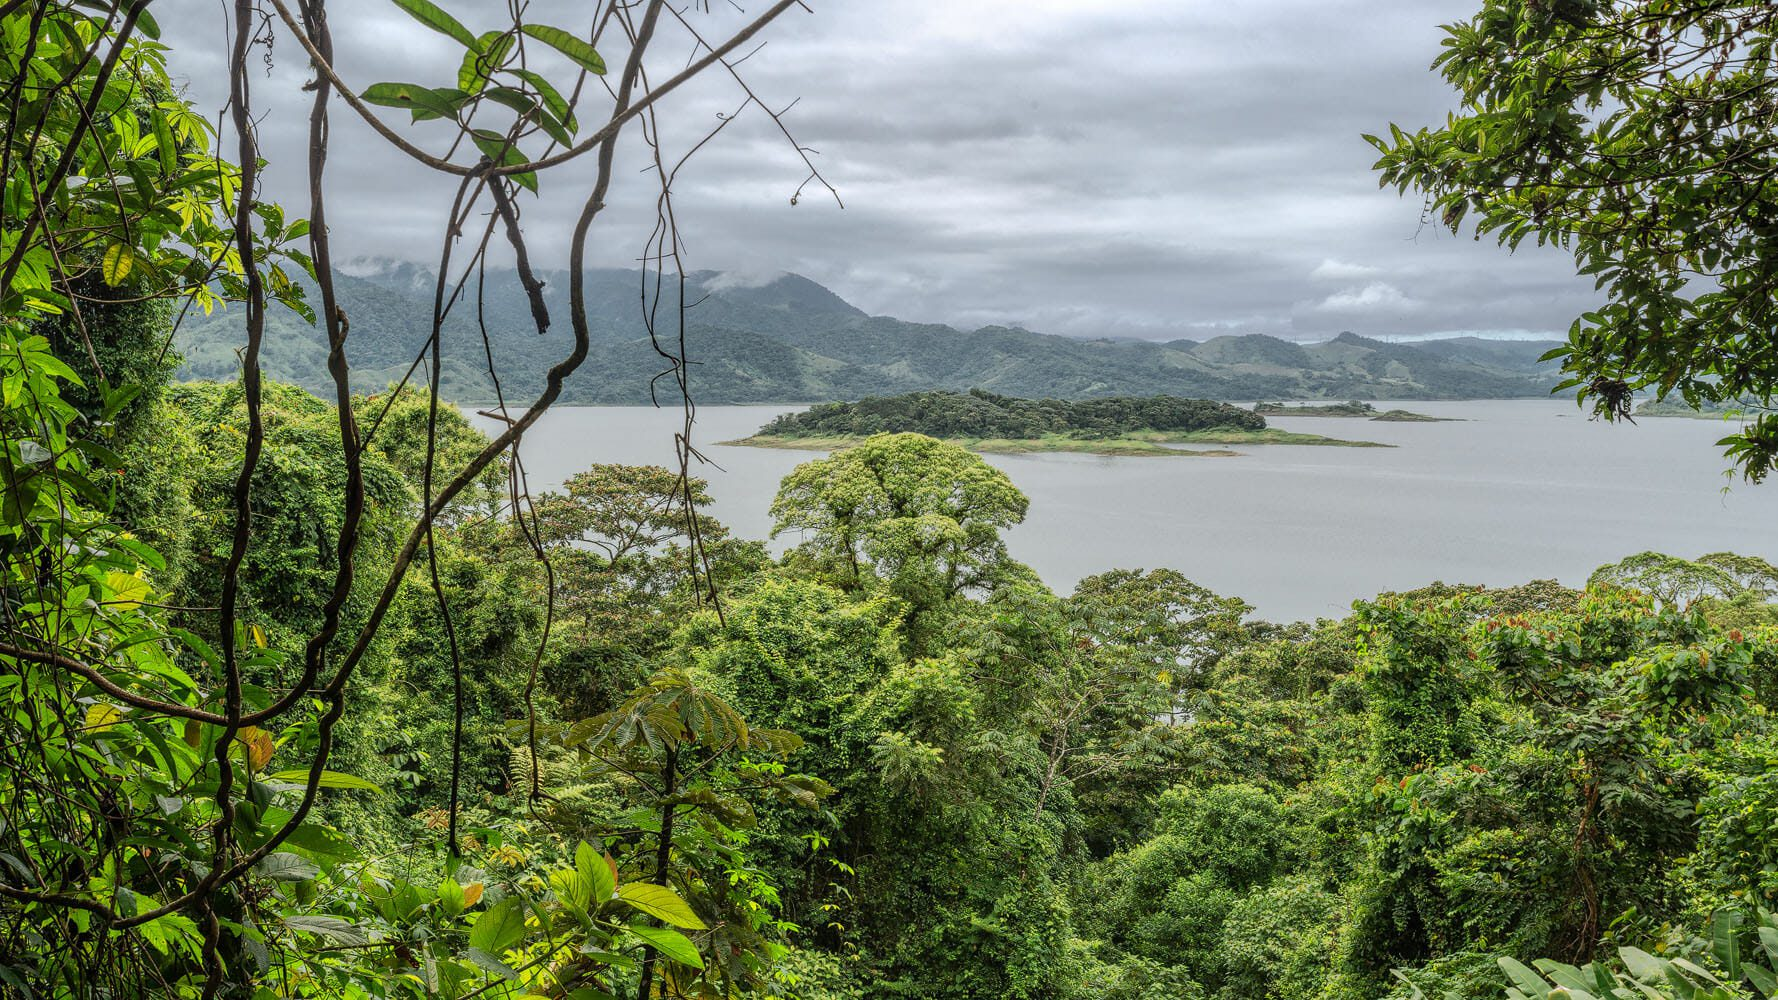 The Arenal lake surrounded by tropical vegetation